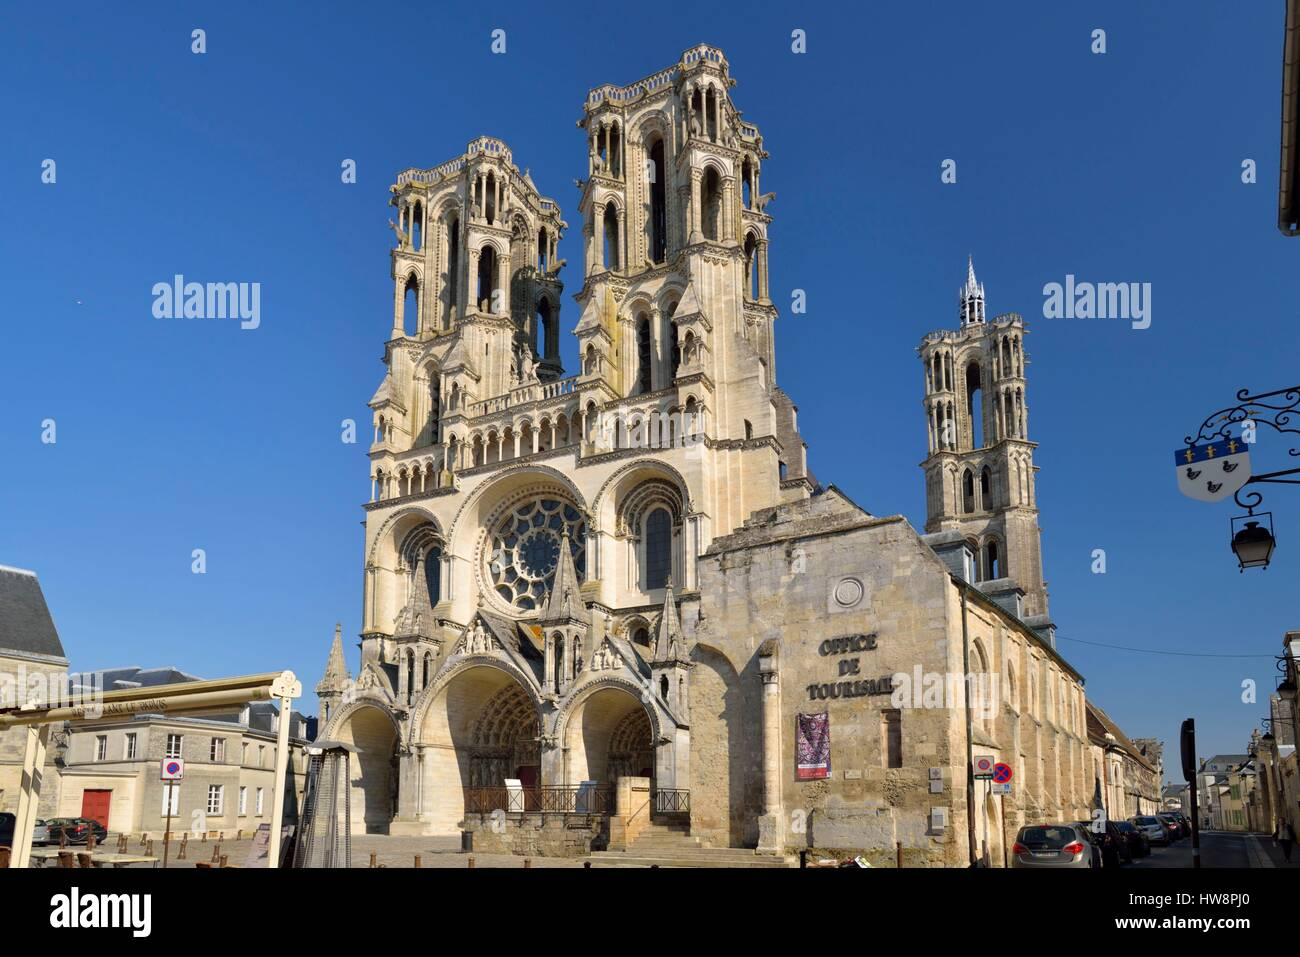 France, Aisne, Laon, cathedral Notre Dame built between 1150 and 1180 Stock Photo